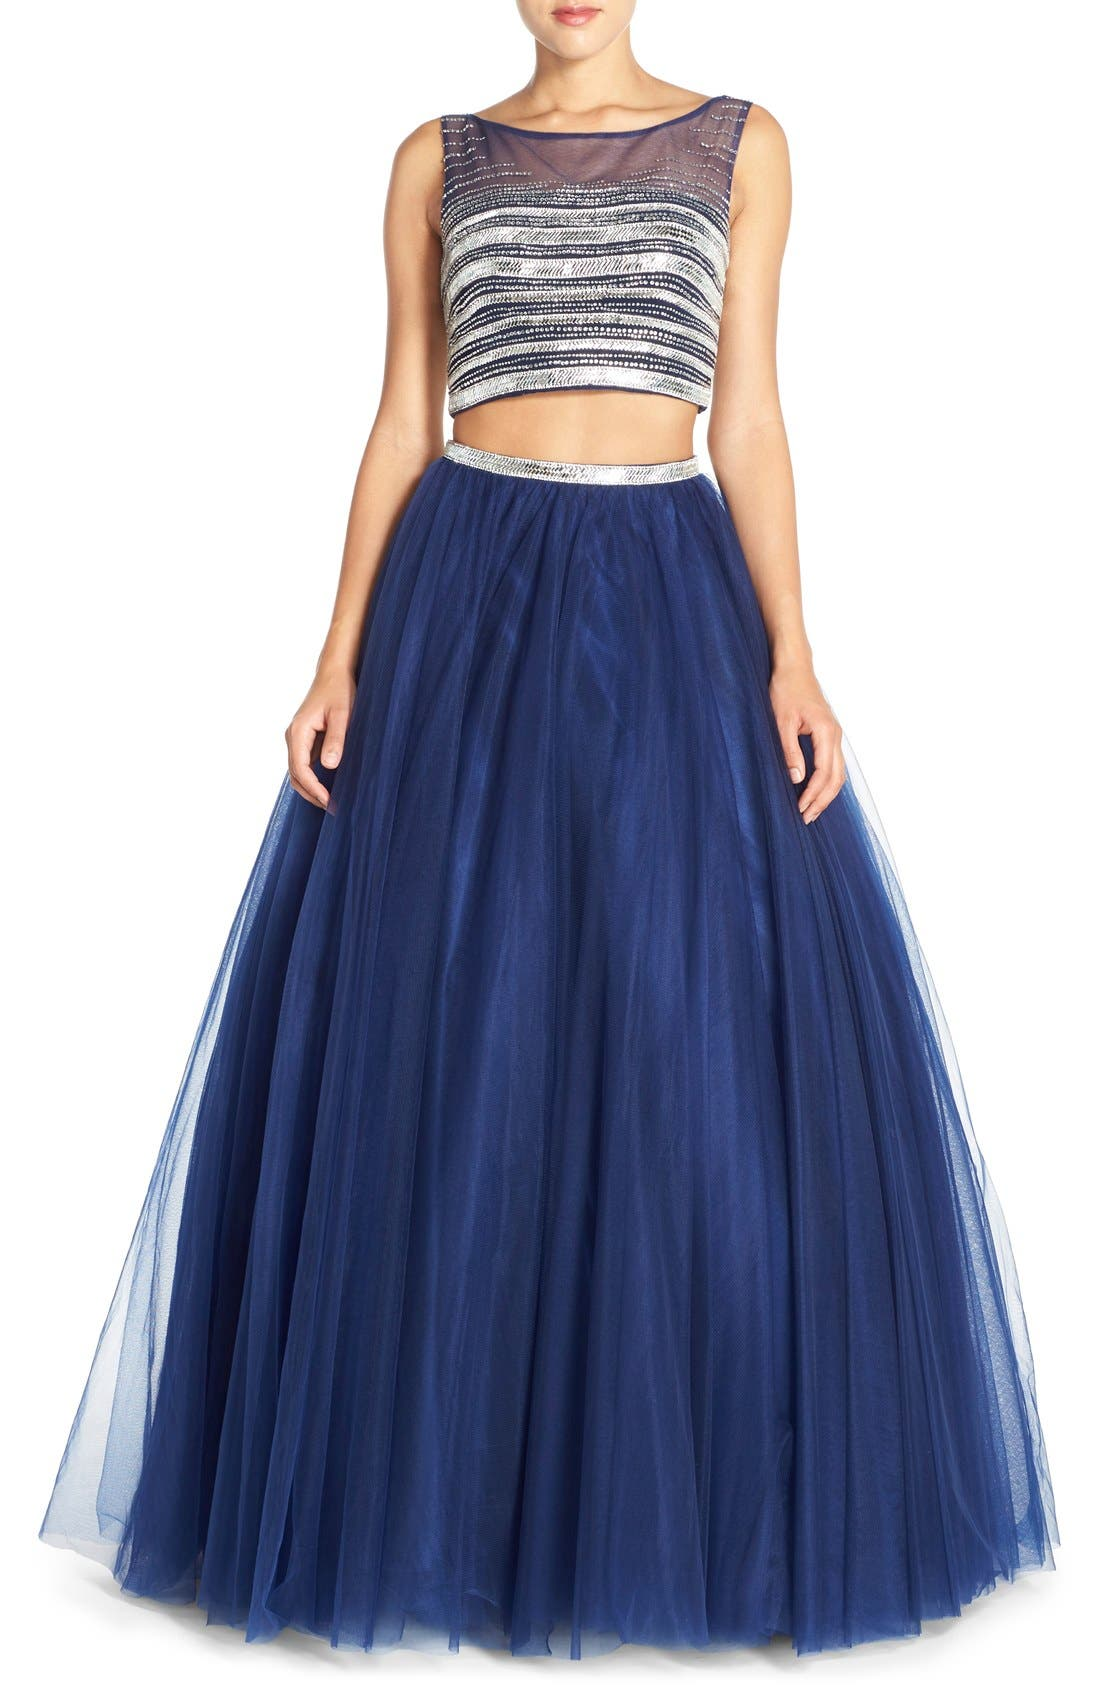 Main Image - JVN by Jovani Embellished Top & Mesh Two-Piece Ballgown